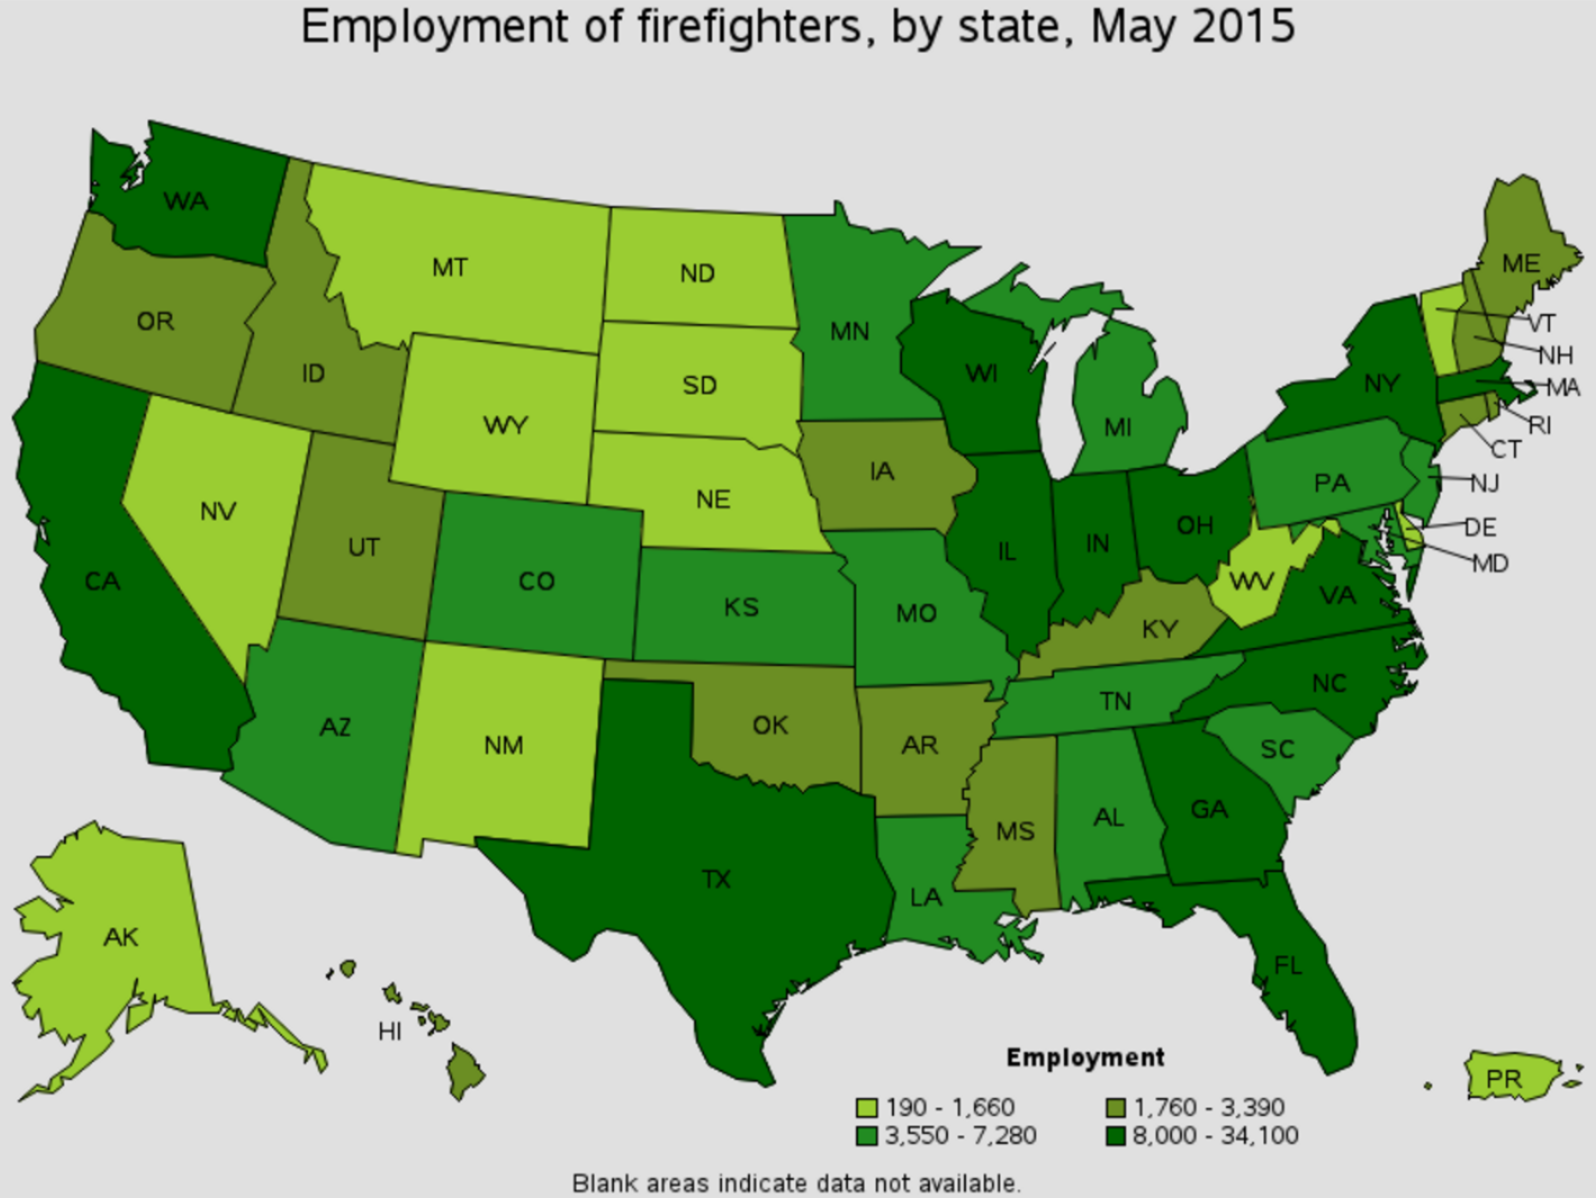 firefighter job outlook by state Westport Kentucky